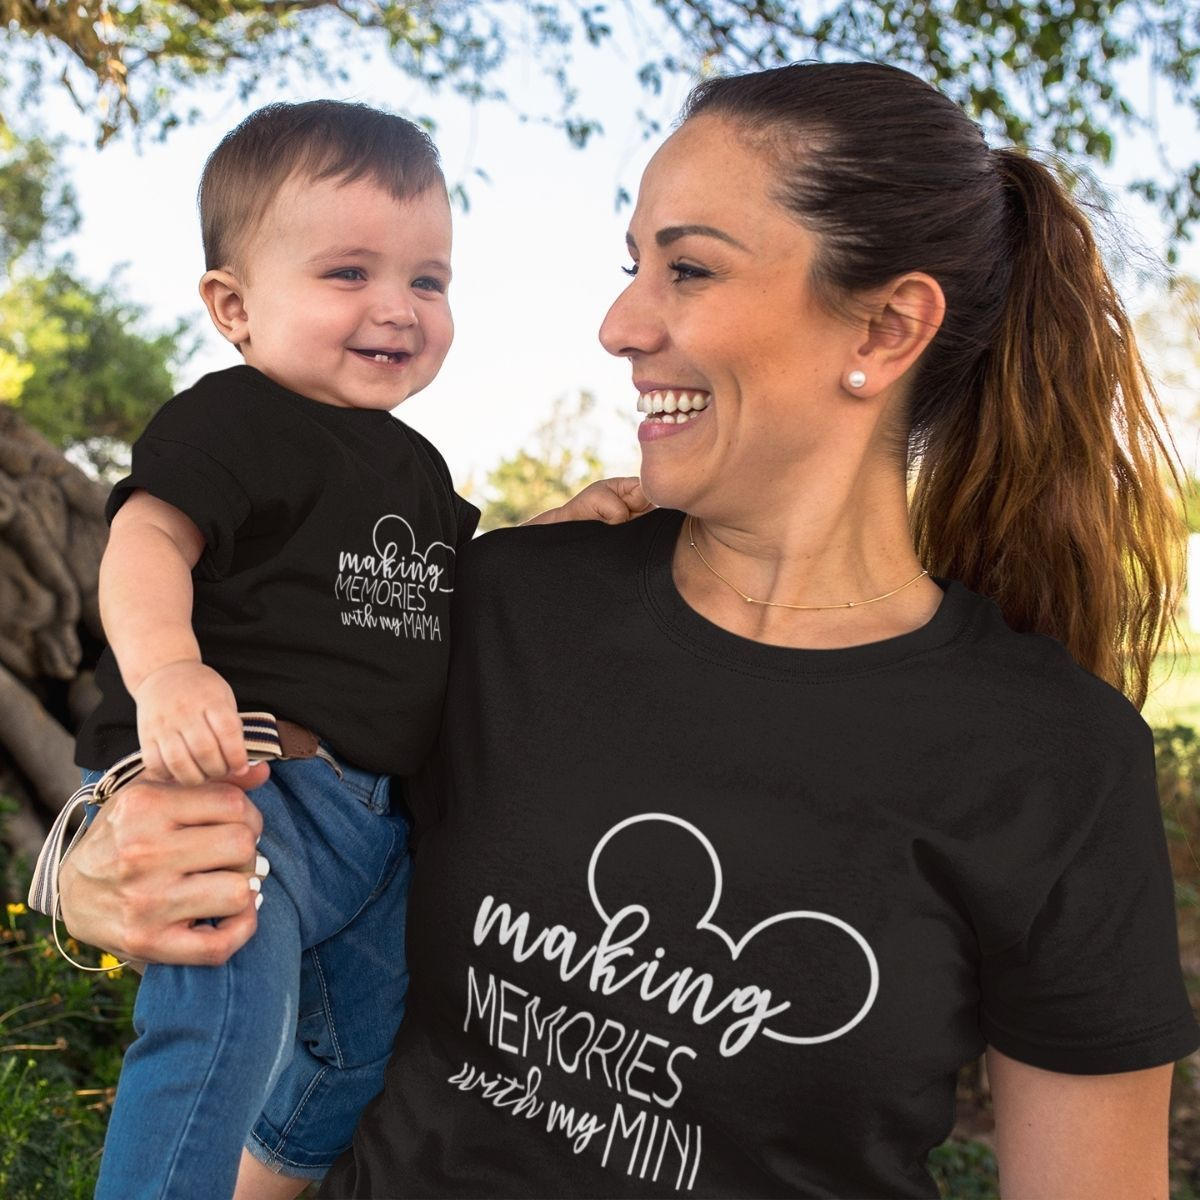 Making Memories with Mama Matching Shirts Onesie for Mom Baby - 18-24 months Kid Shirt / Black